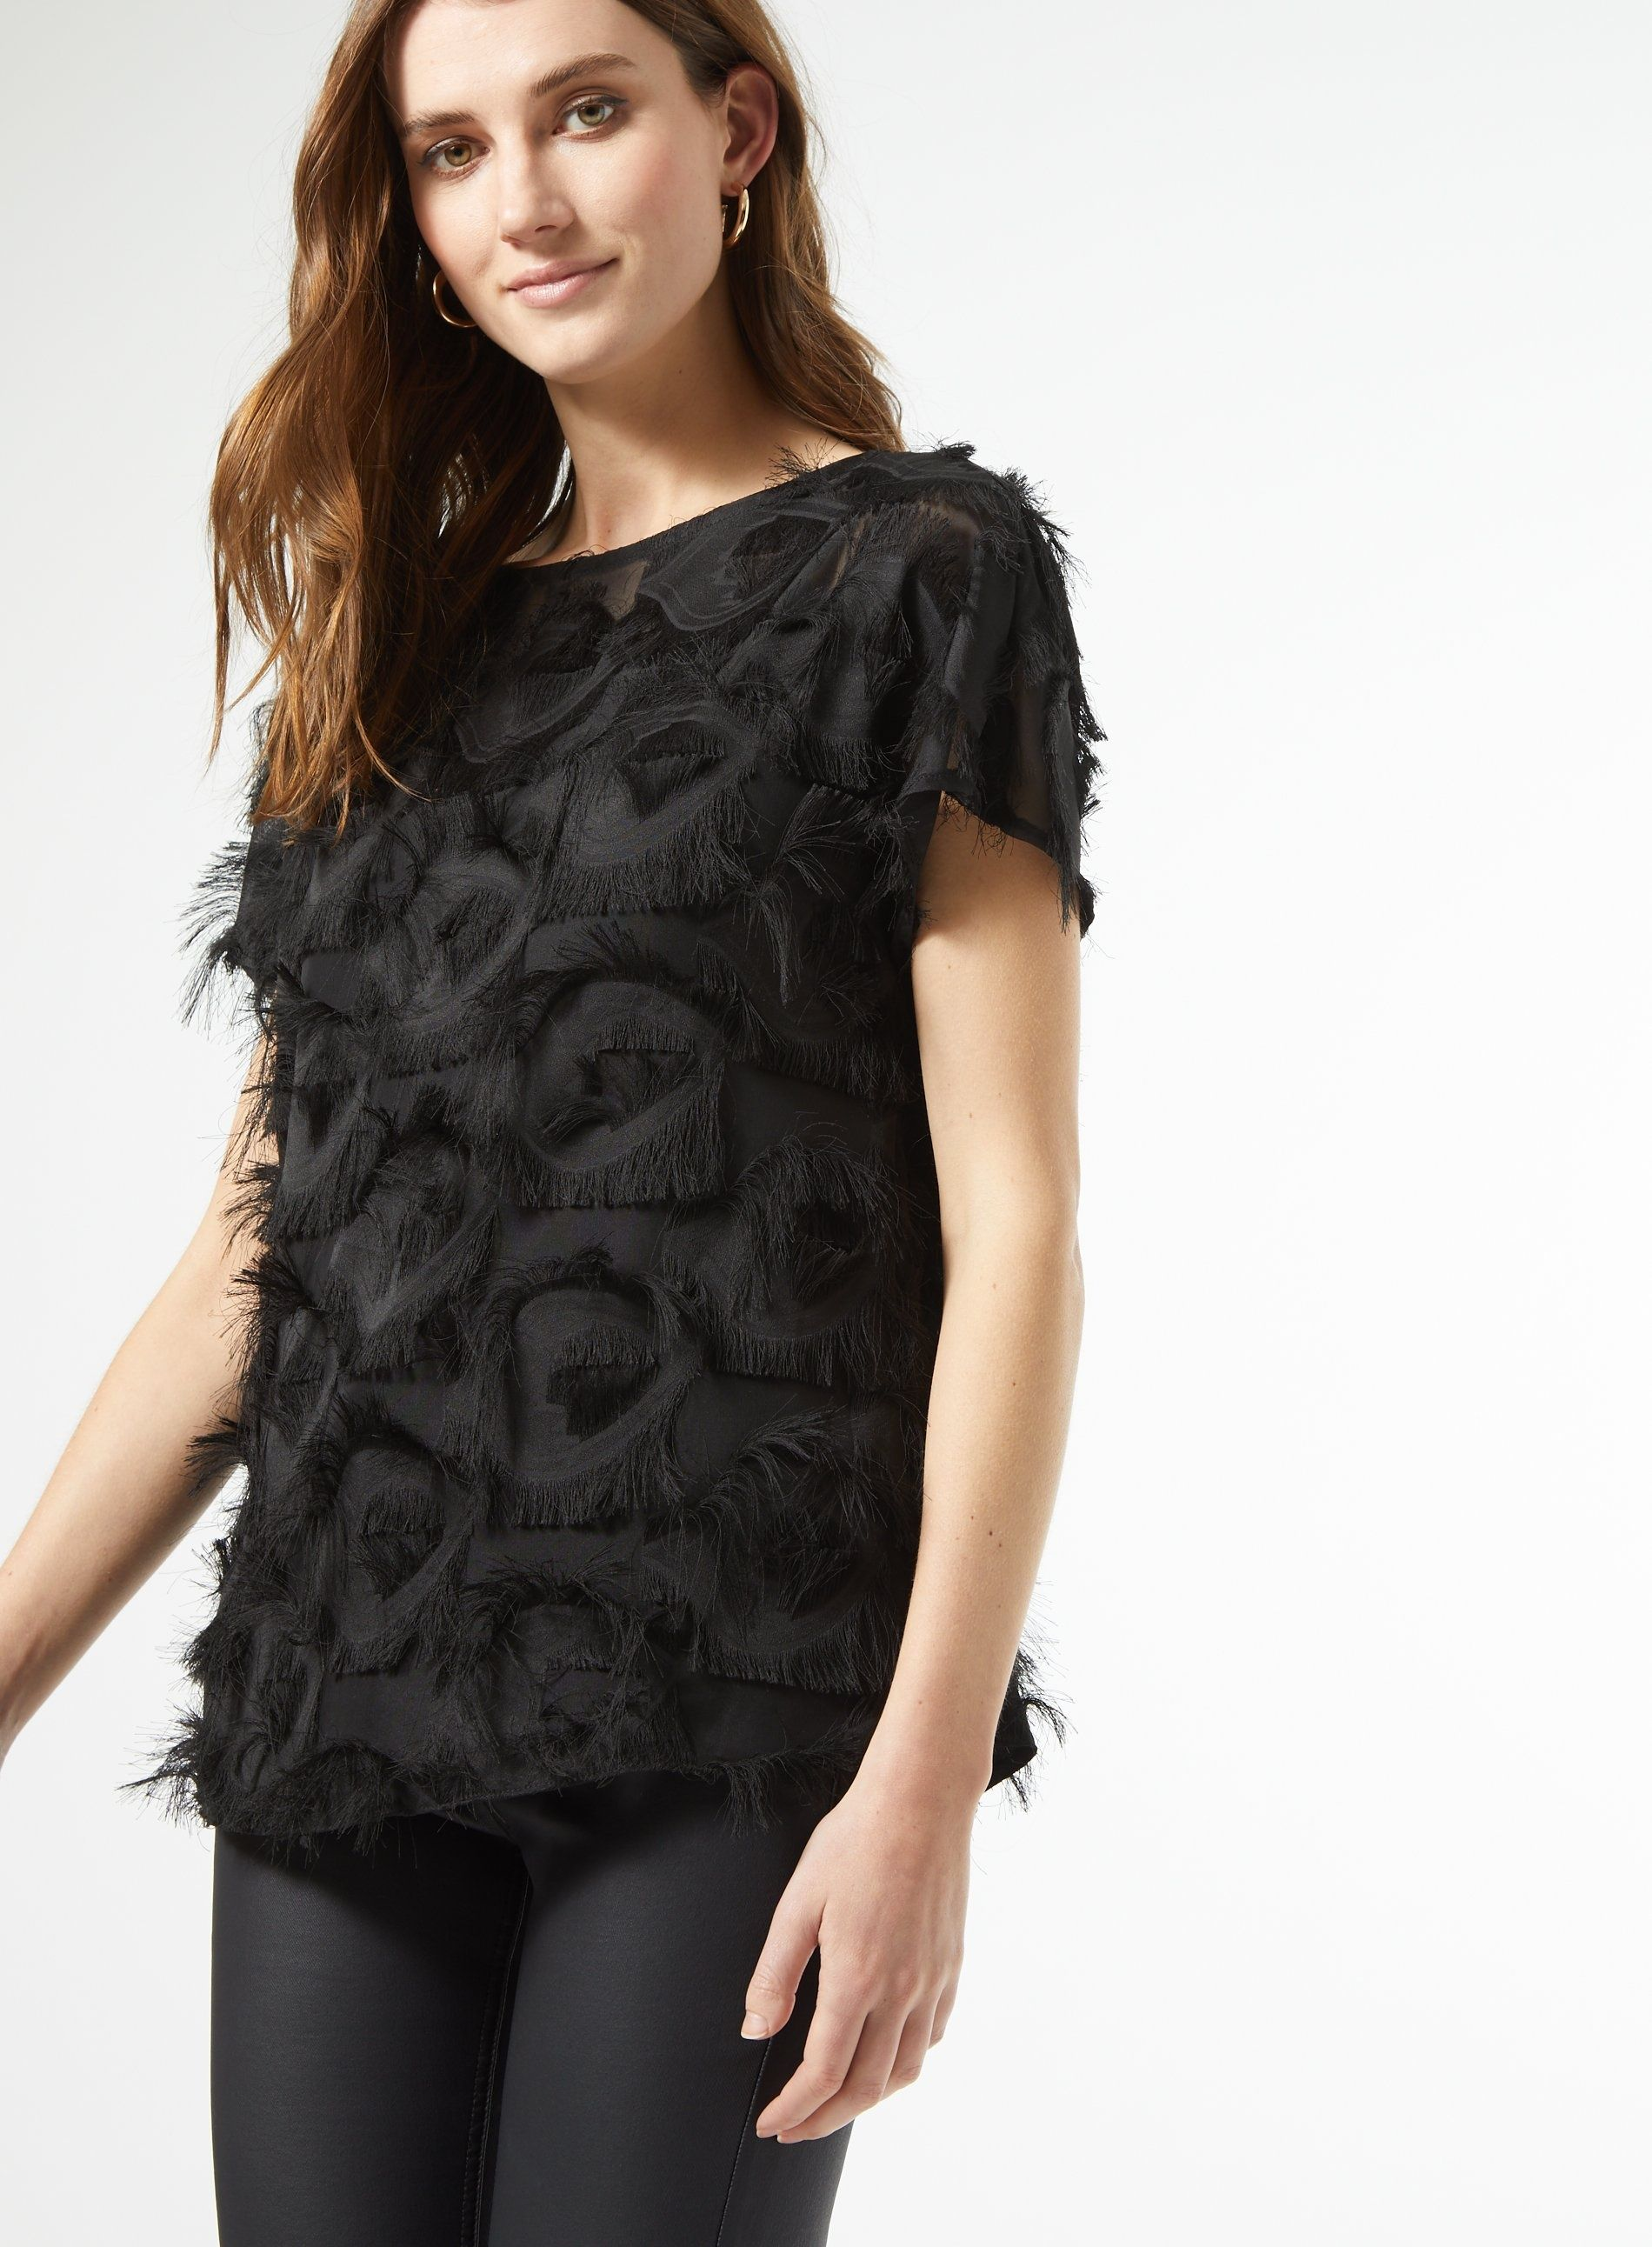 Dorothy Perkins Womens Black Textured Blouse Top Short Sleeve Casual